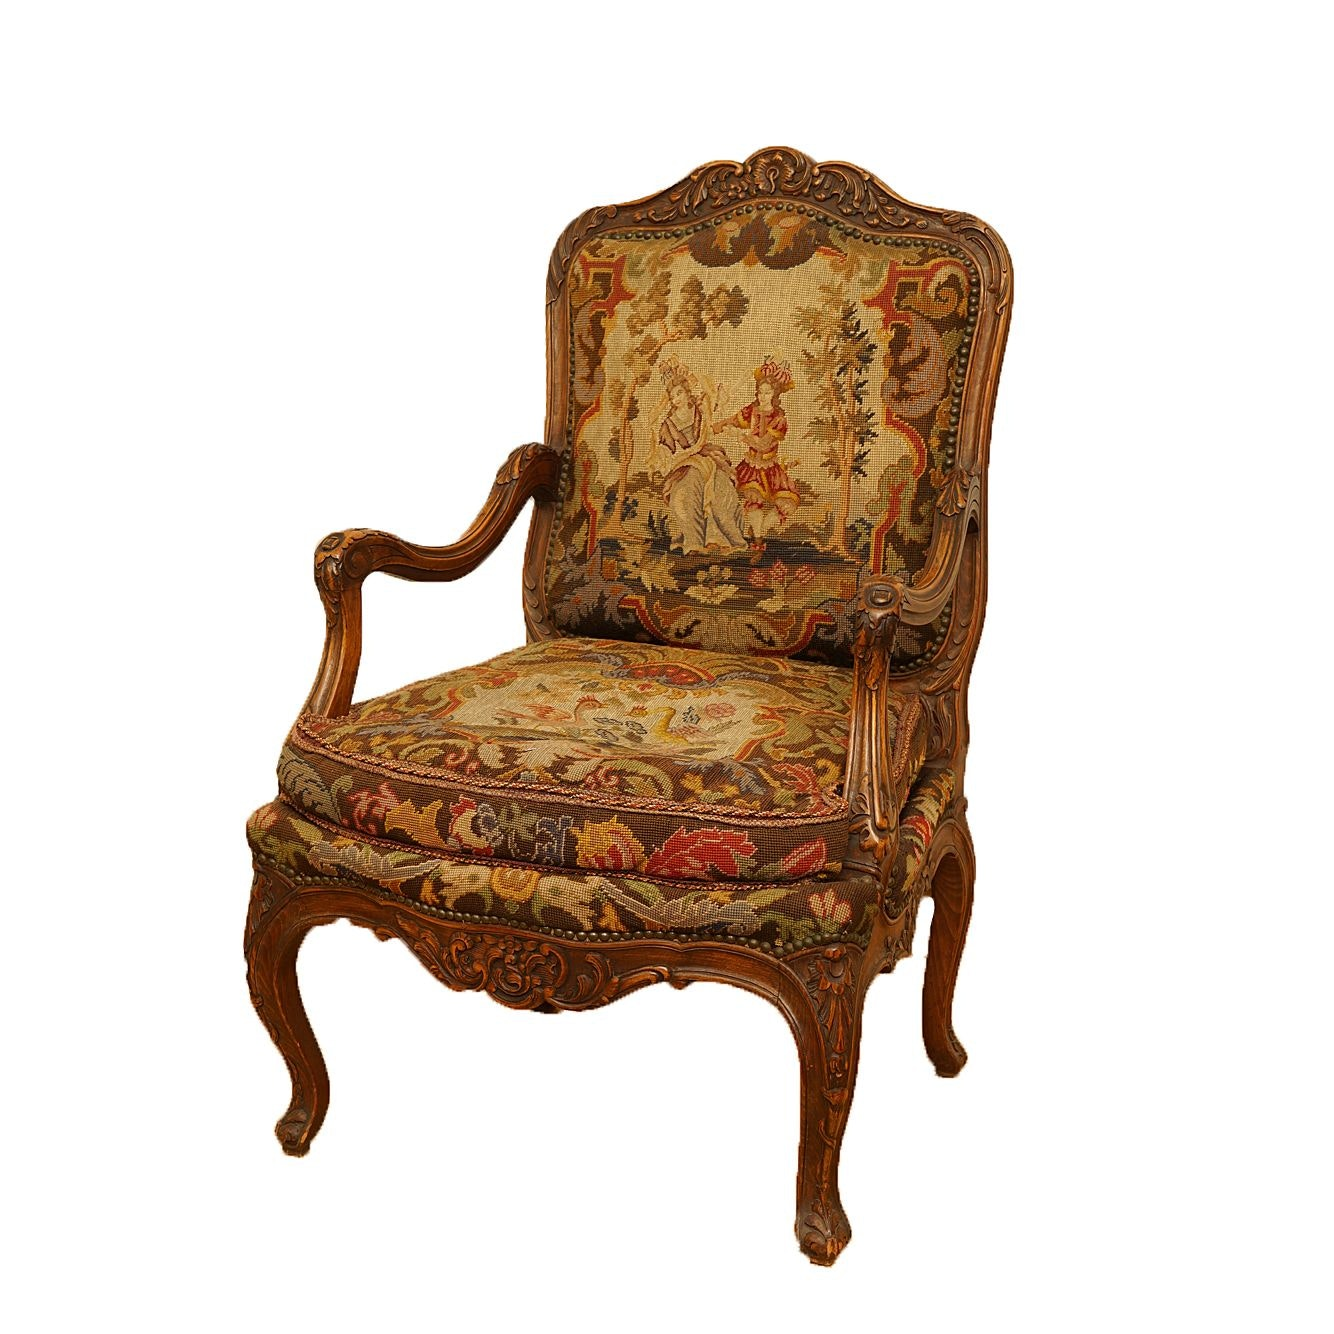 Louis XV Style Armchair with Needlepoint Upholstery